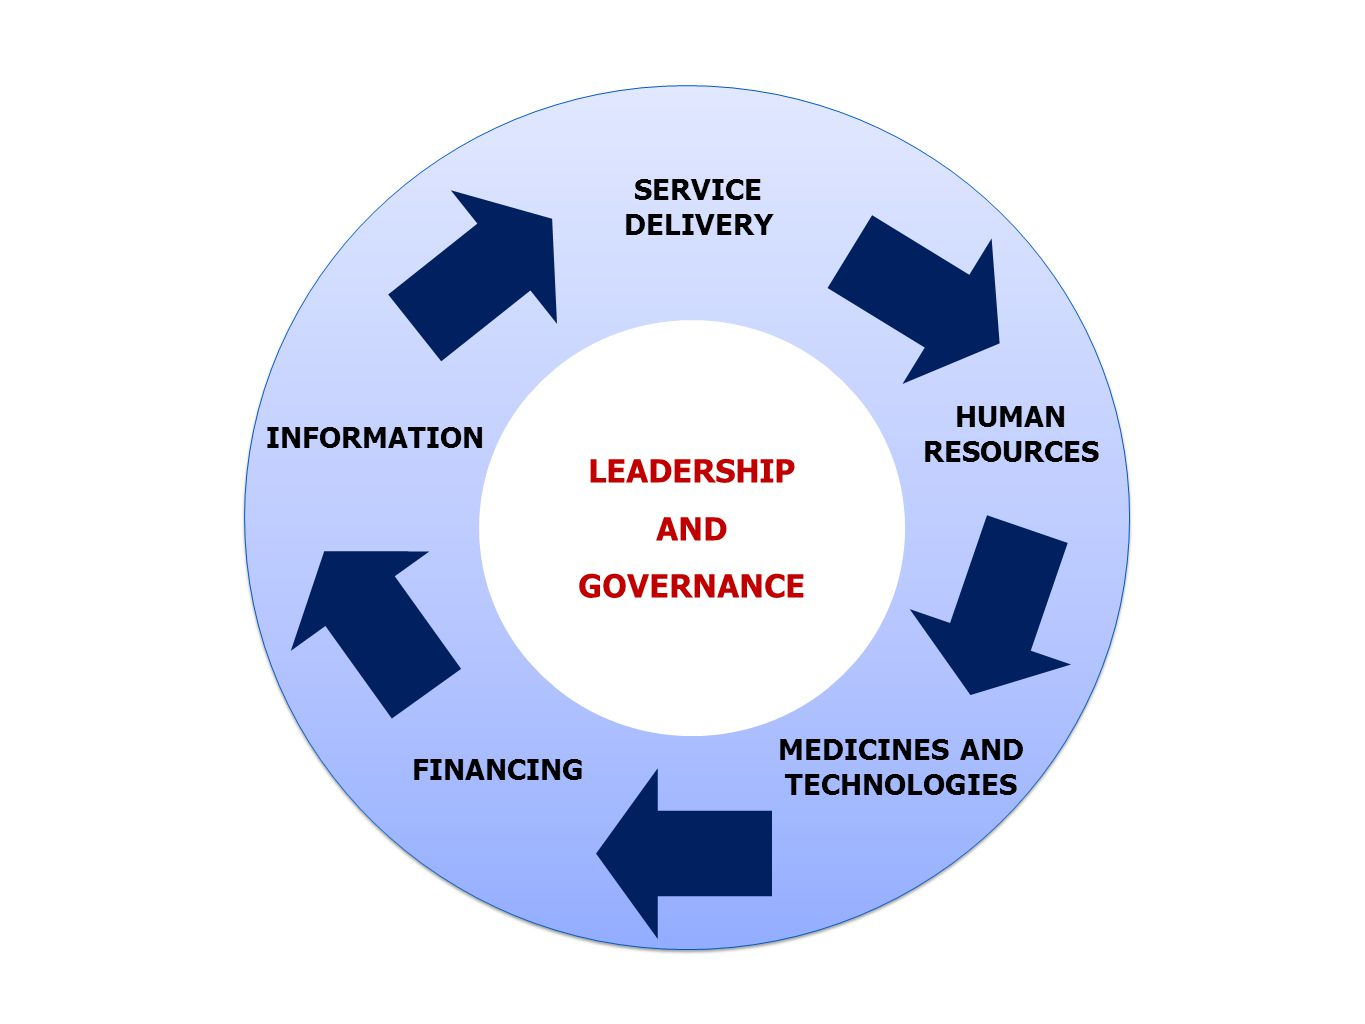 LEADERSHIP AND GOVERNANCE SERVICE DELIVERY HUMAN RESOURCES MEDICINES AND TECHNOLOGIES FINANCING INFORMATION